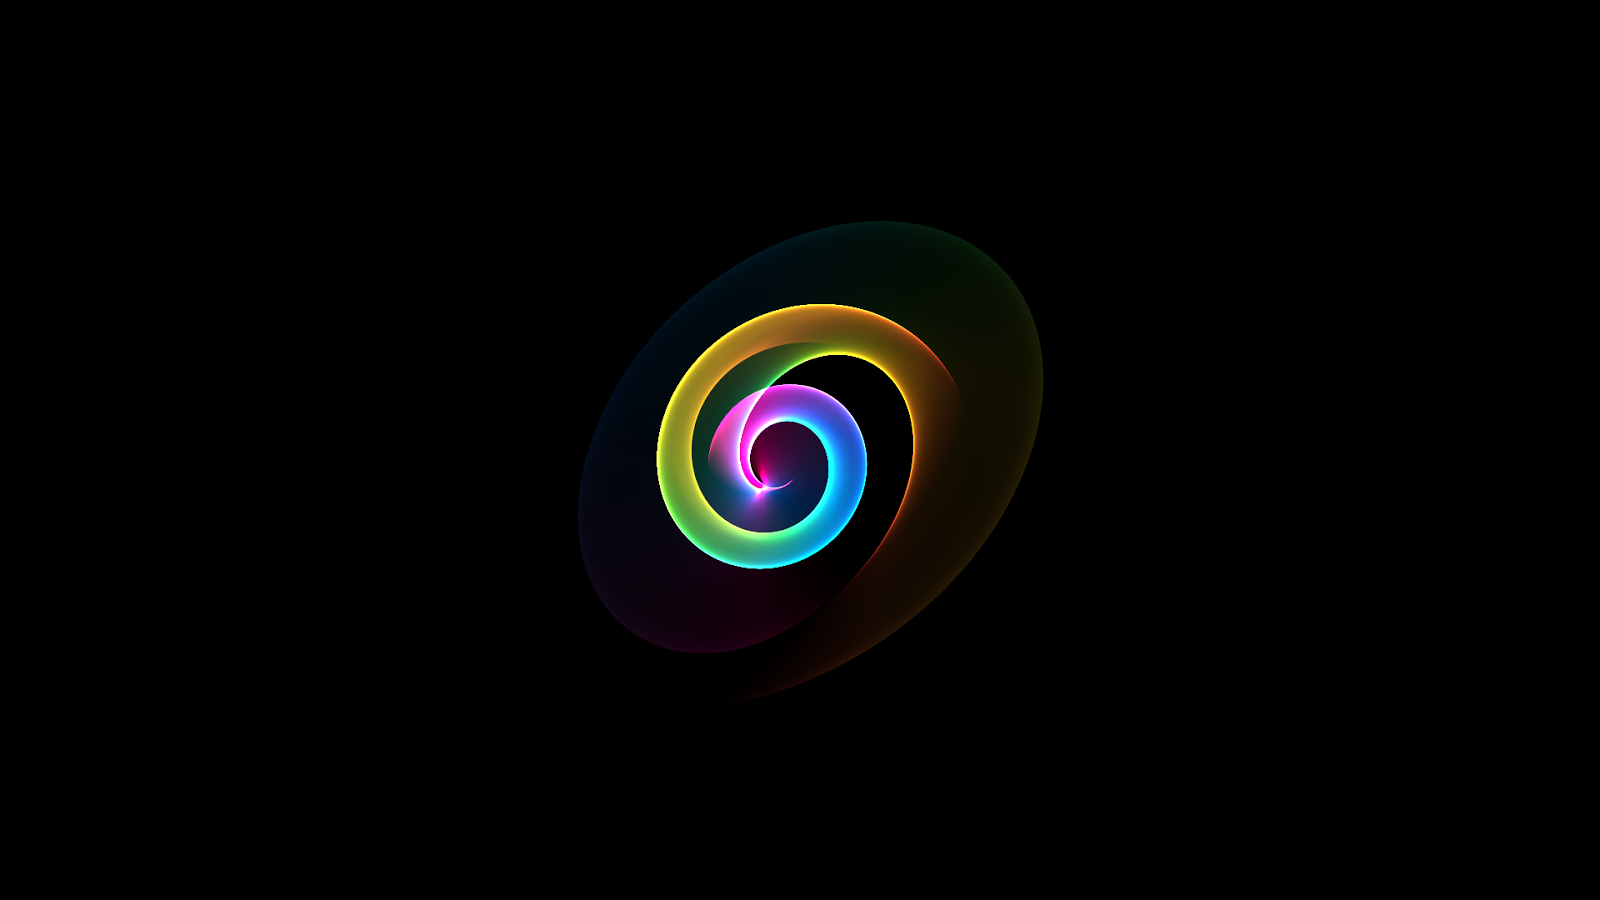 Multicolor Hypnotize Circle Desktop Wallpapers And Backgrounds Wallpaper Spiral Hd Backgrounds